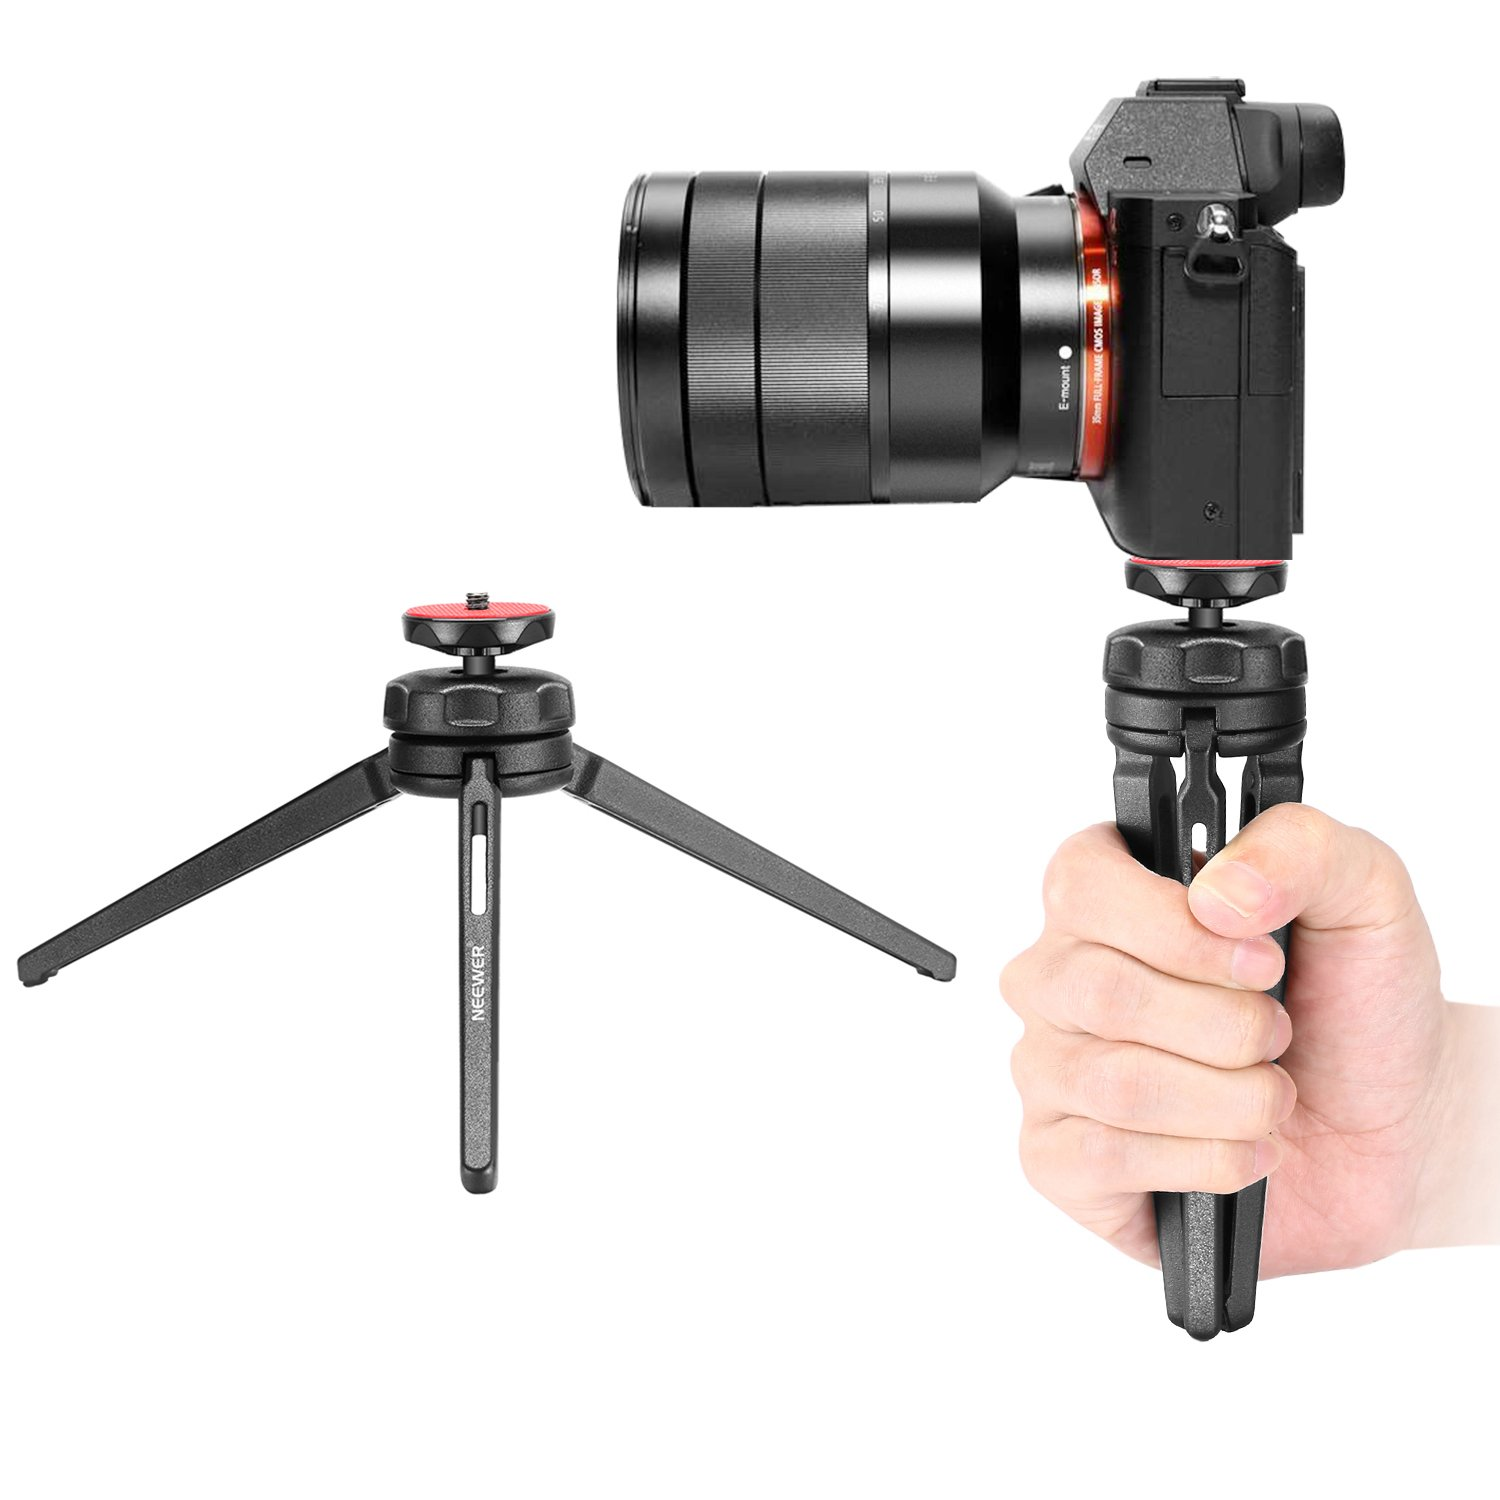 Neewer Mini Tabletop Tripod Stabilizer Grip, Lightweight Portable Aluminum Alloy Stand with Swivel Ball Head for DSLR Cameras, Smartphones, Video Camcorders up to 6.6 pounds/3 kilograms (Black) 10090546